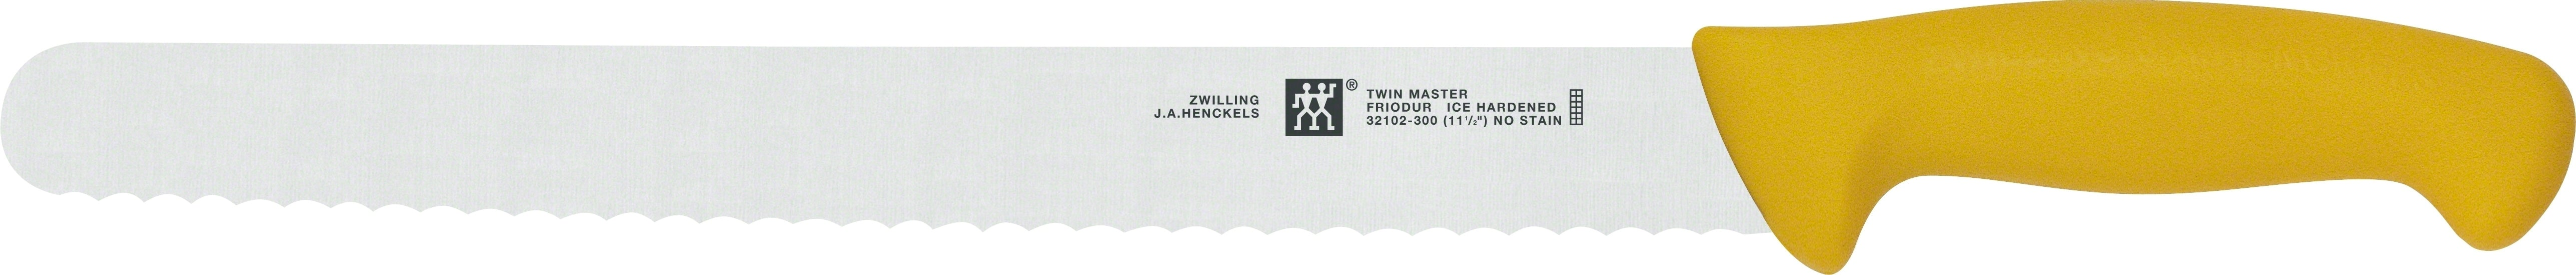 "Zwilling J A Henckels TWIN® Master 11.5"" Carving Knife 32102-300"